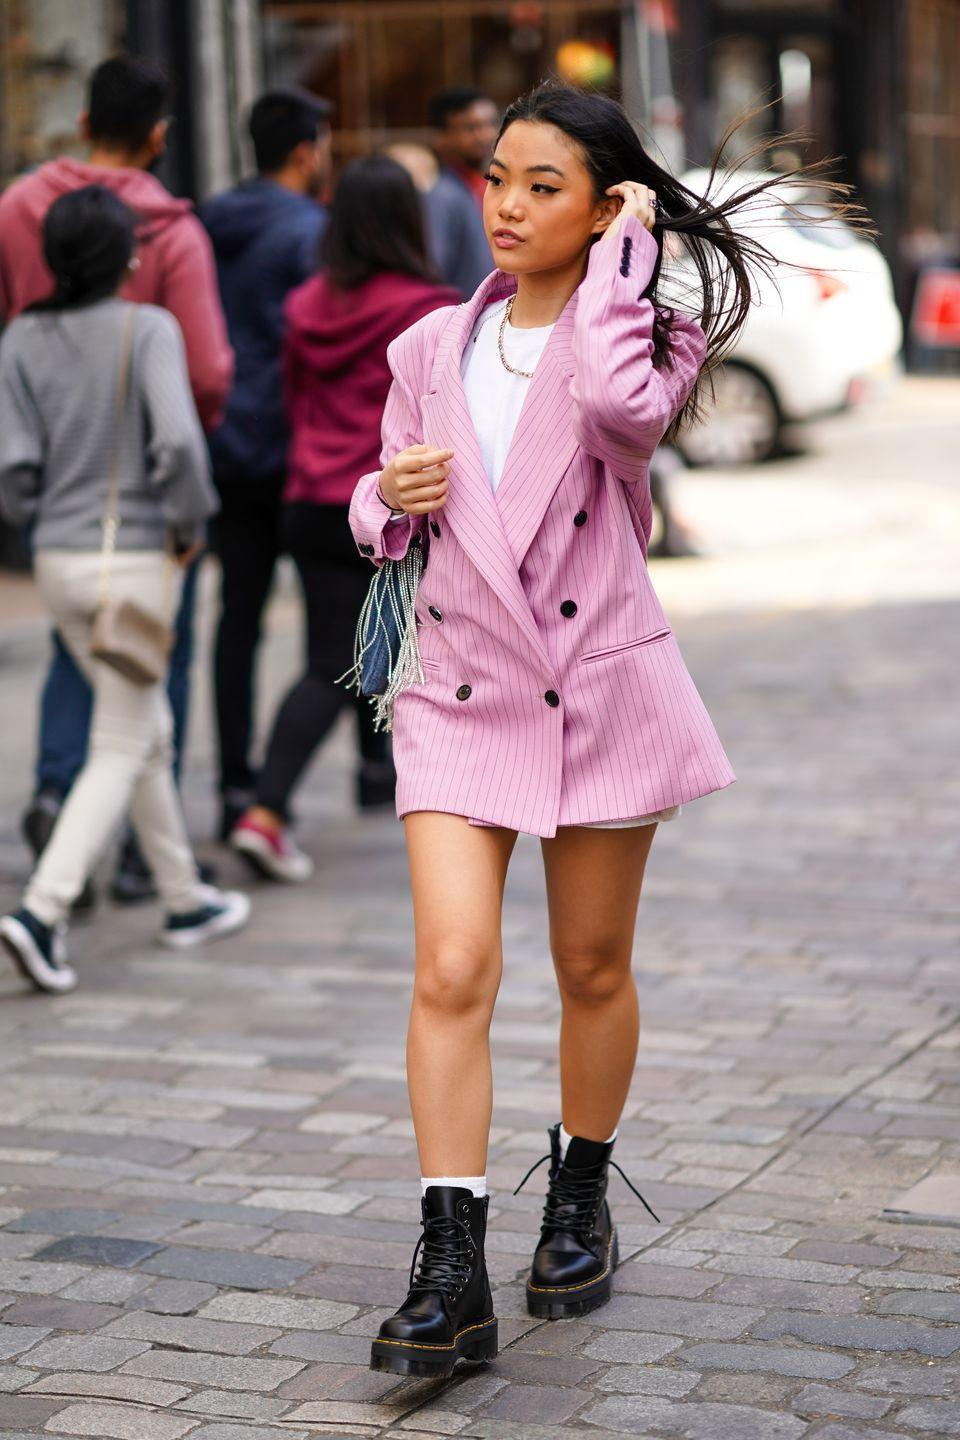 <p>An oversized blazer is a cute twist on a business room classic. Layer the jacket-turned-dress over a tee and short-shorts to stay covered while still showing major leg. Some delicate jewelry and a chunky boot are the best additions to this polished piece. <br><br></p>